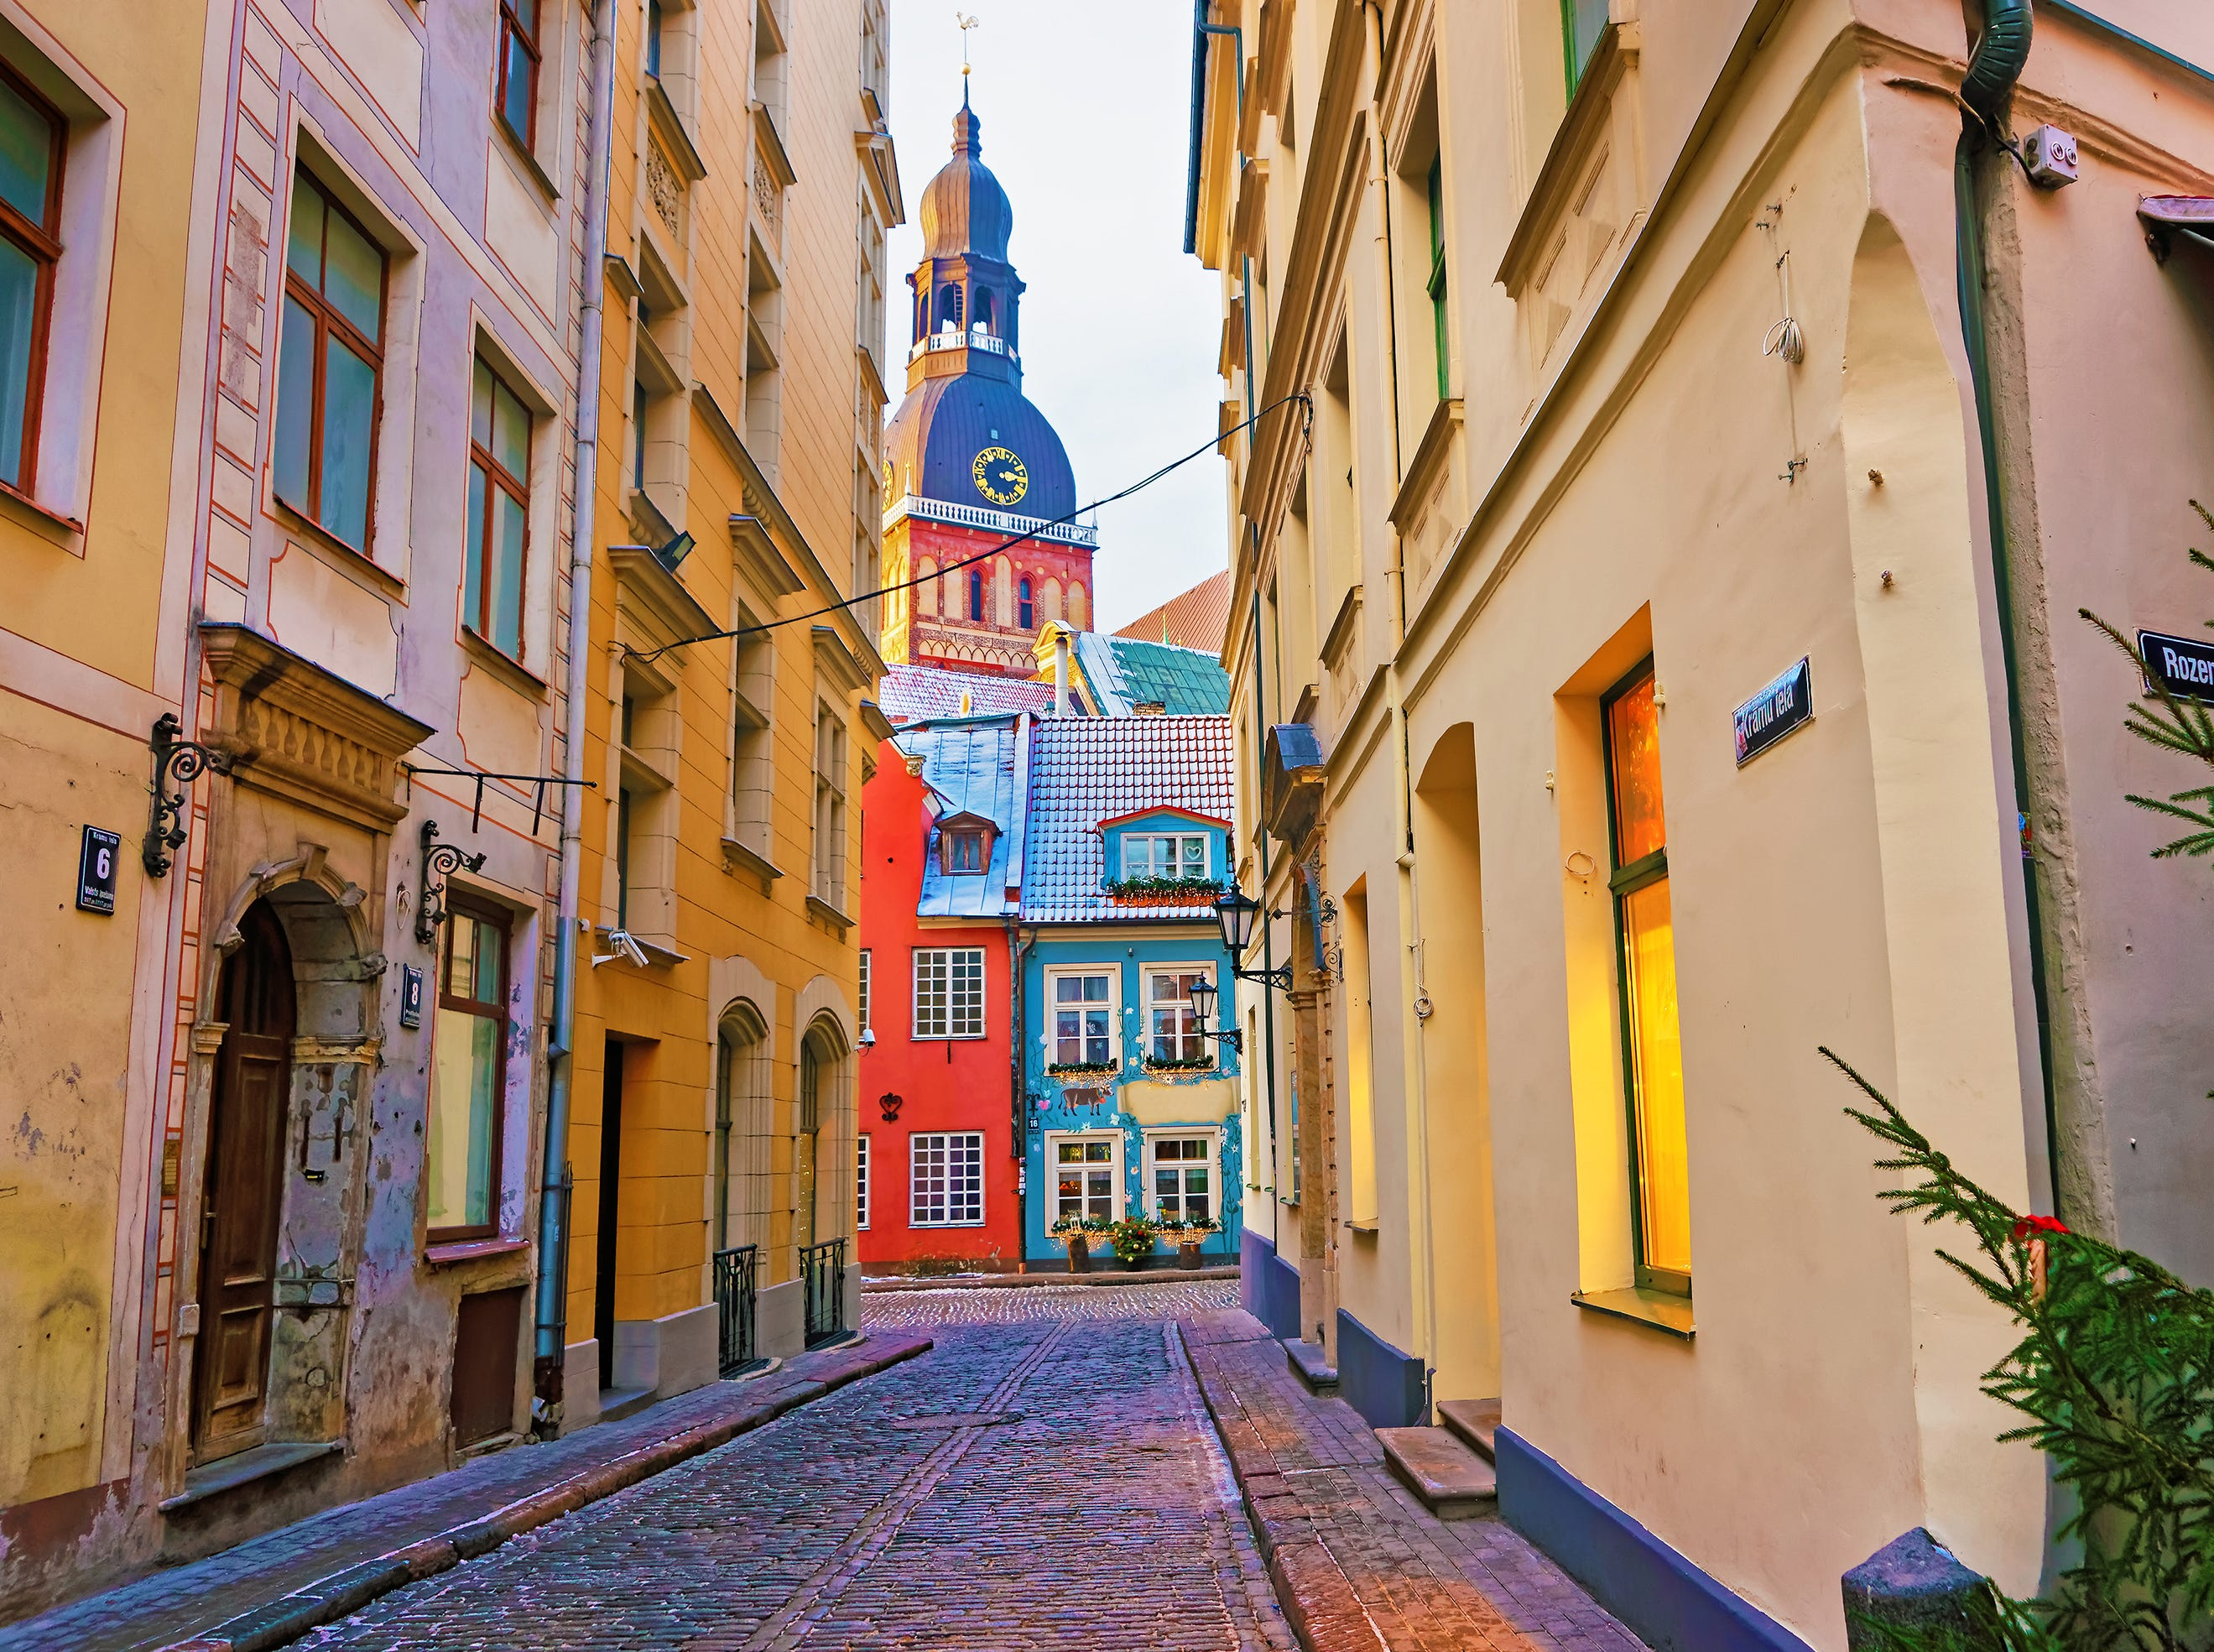 No. 4: Latvia, $136/square foot ($15,269 local salary buys a 338 sq. ft. dwelling).